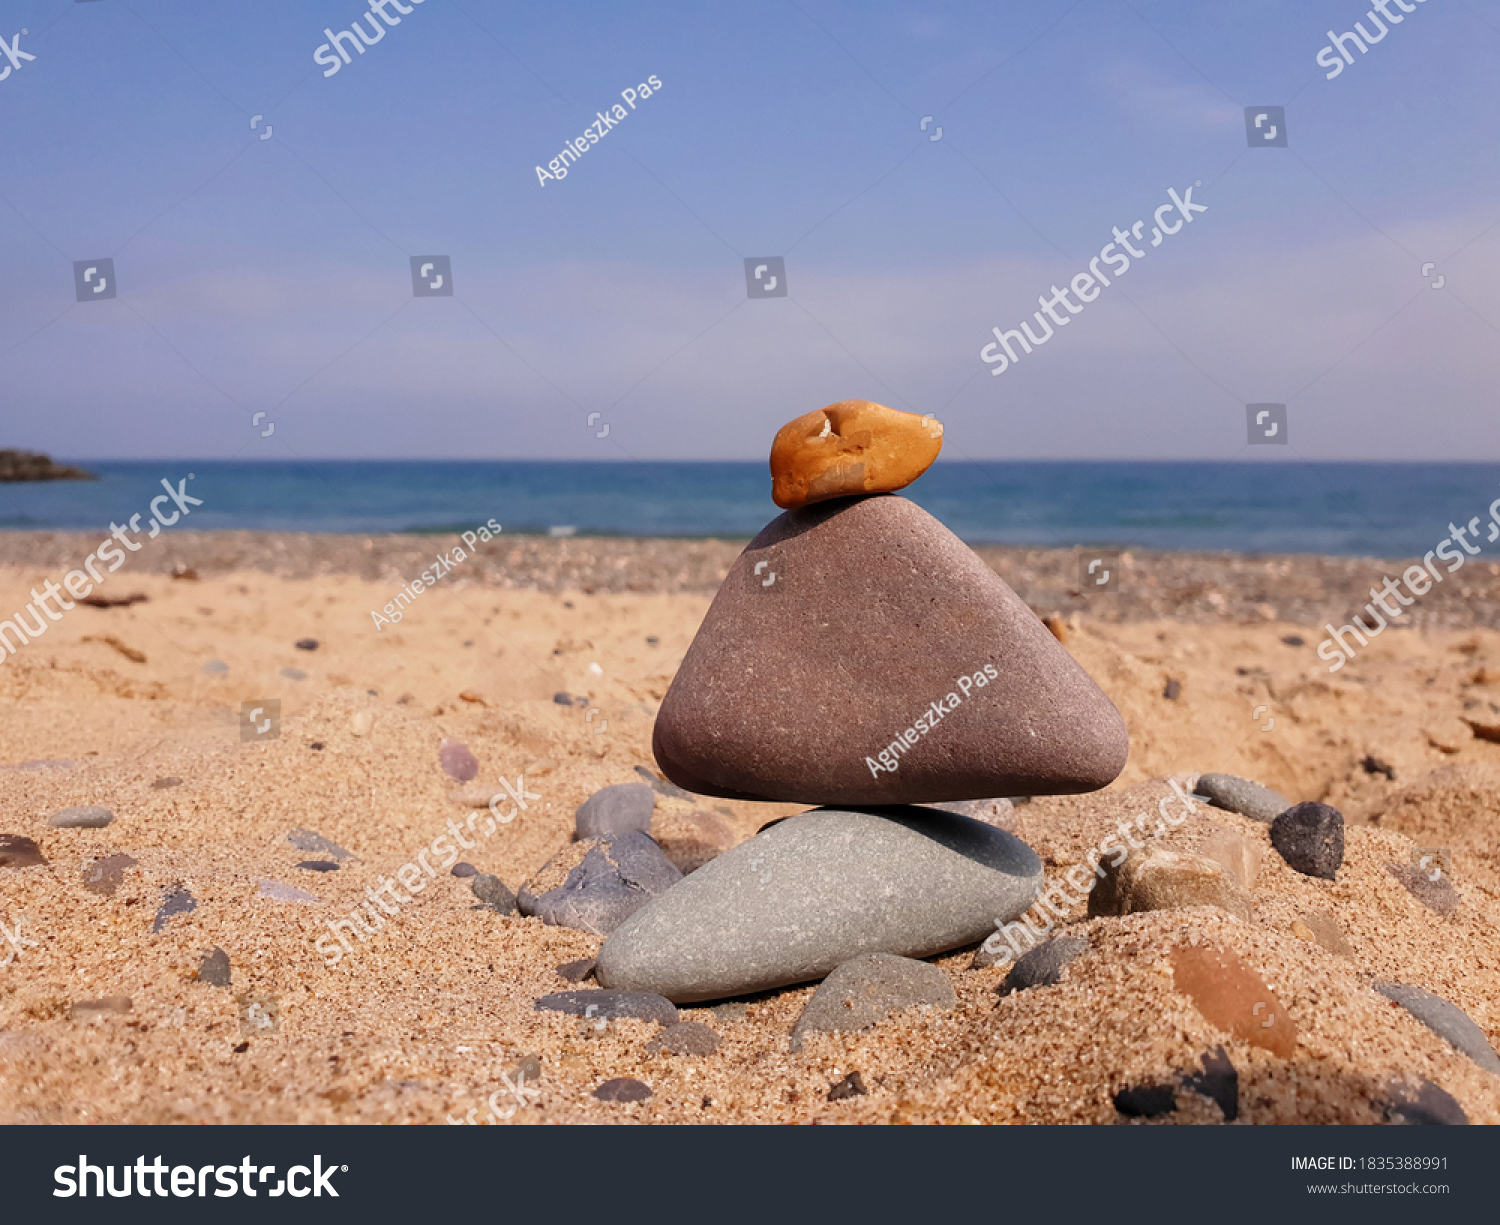 Closeup of a pile of balanced stones on pebble beach with the sea as a blurry background. Sunny summer day.